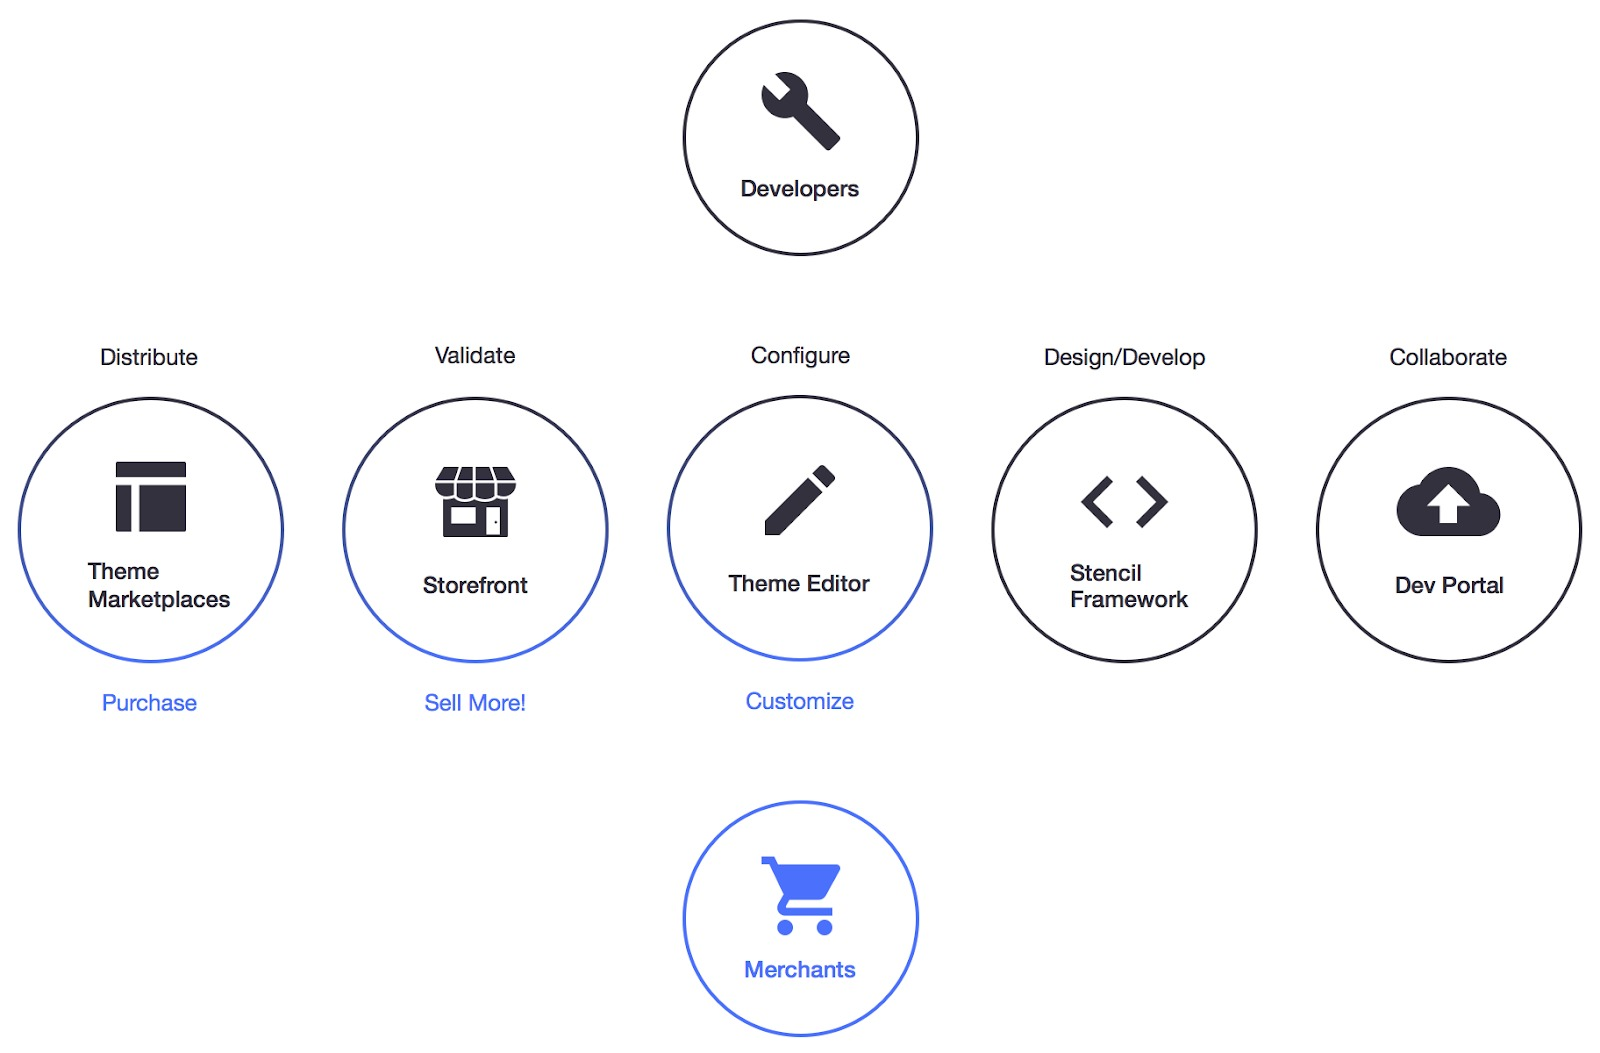 Aspects of an Ecommerce Platform